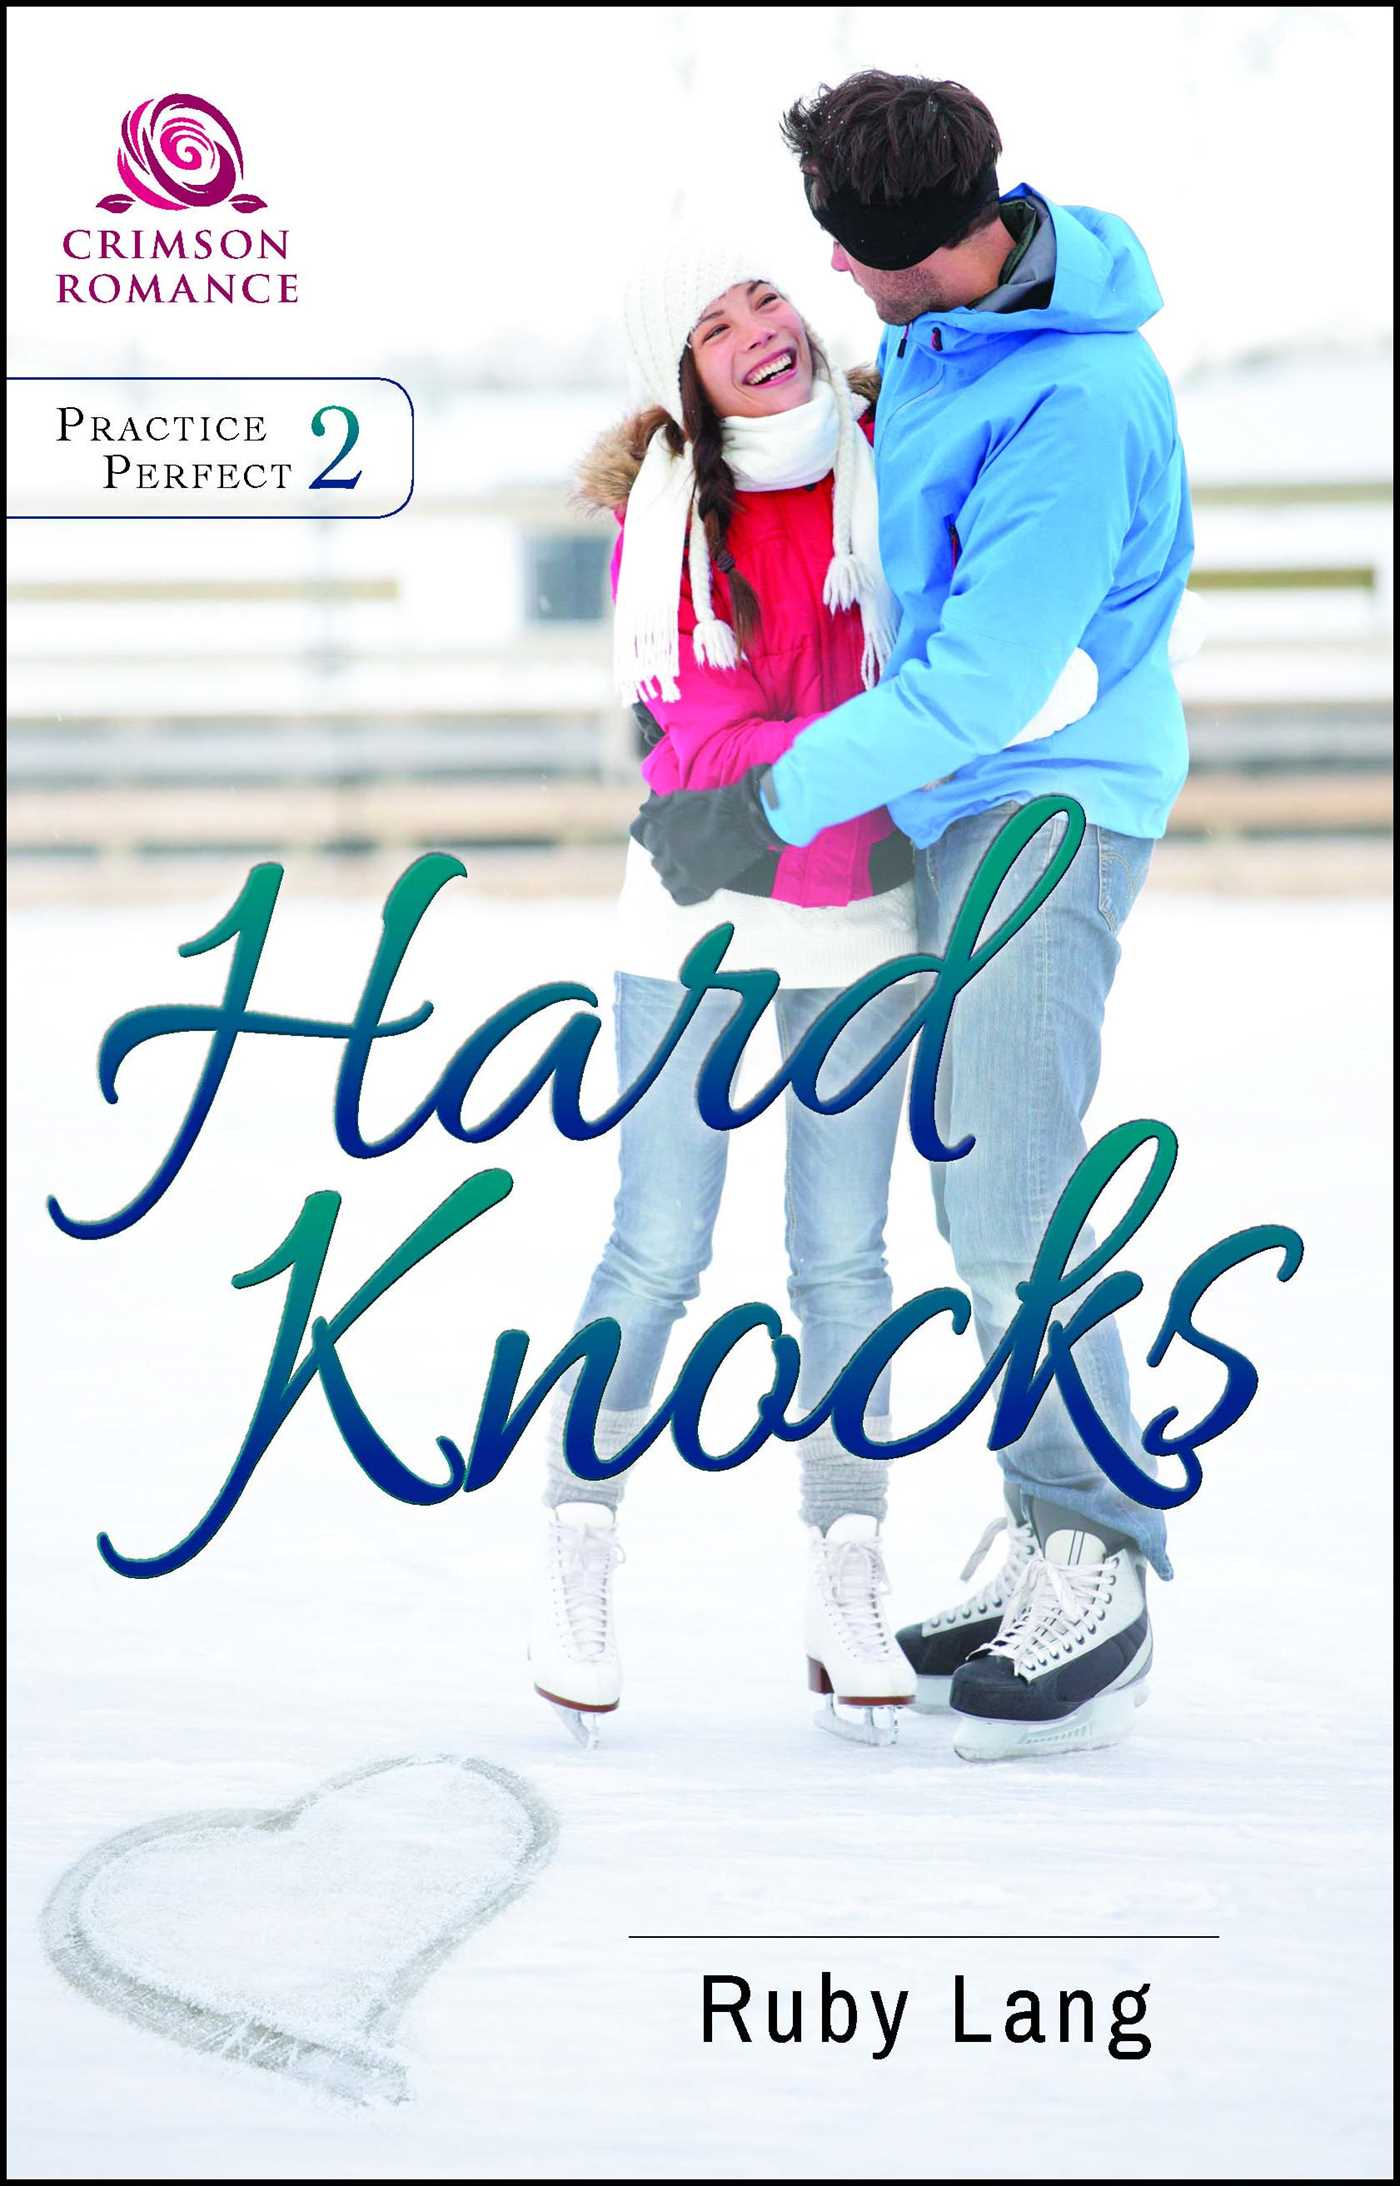 Hard knocks 9781440596575 hr